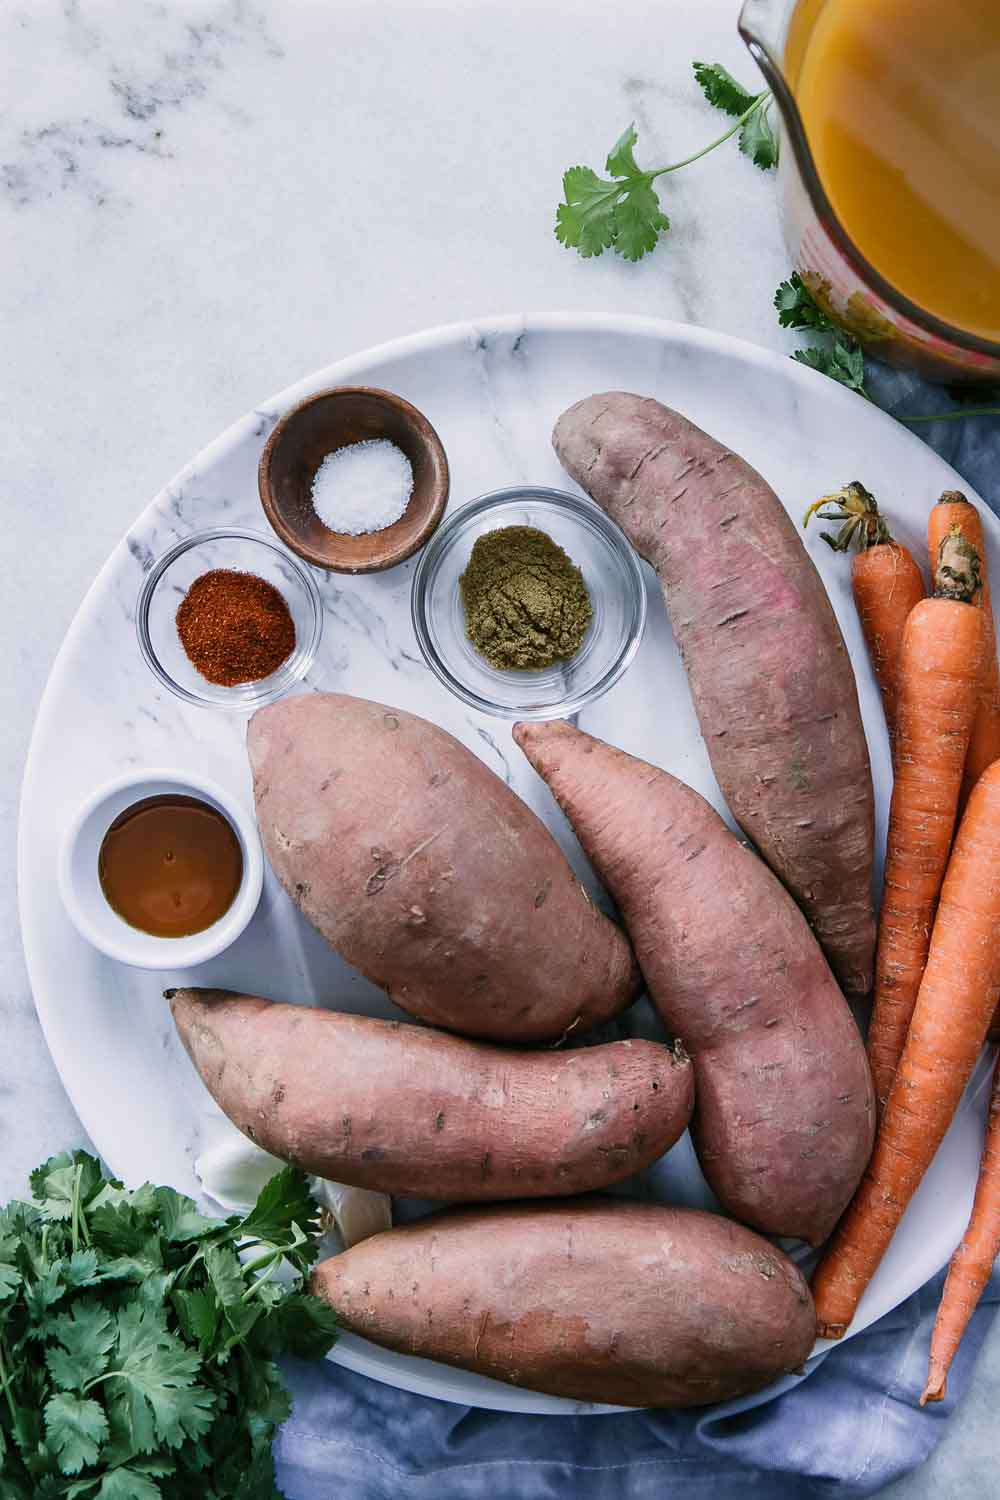 sweet potatoes, carrots, vegetable broth, spices, and herbs to make a simple instant pot sweet potato carrot soup